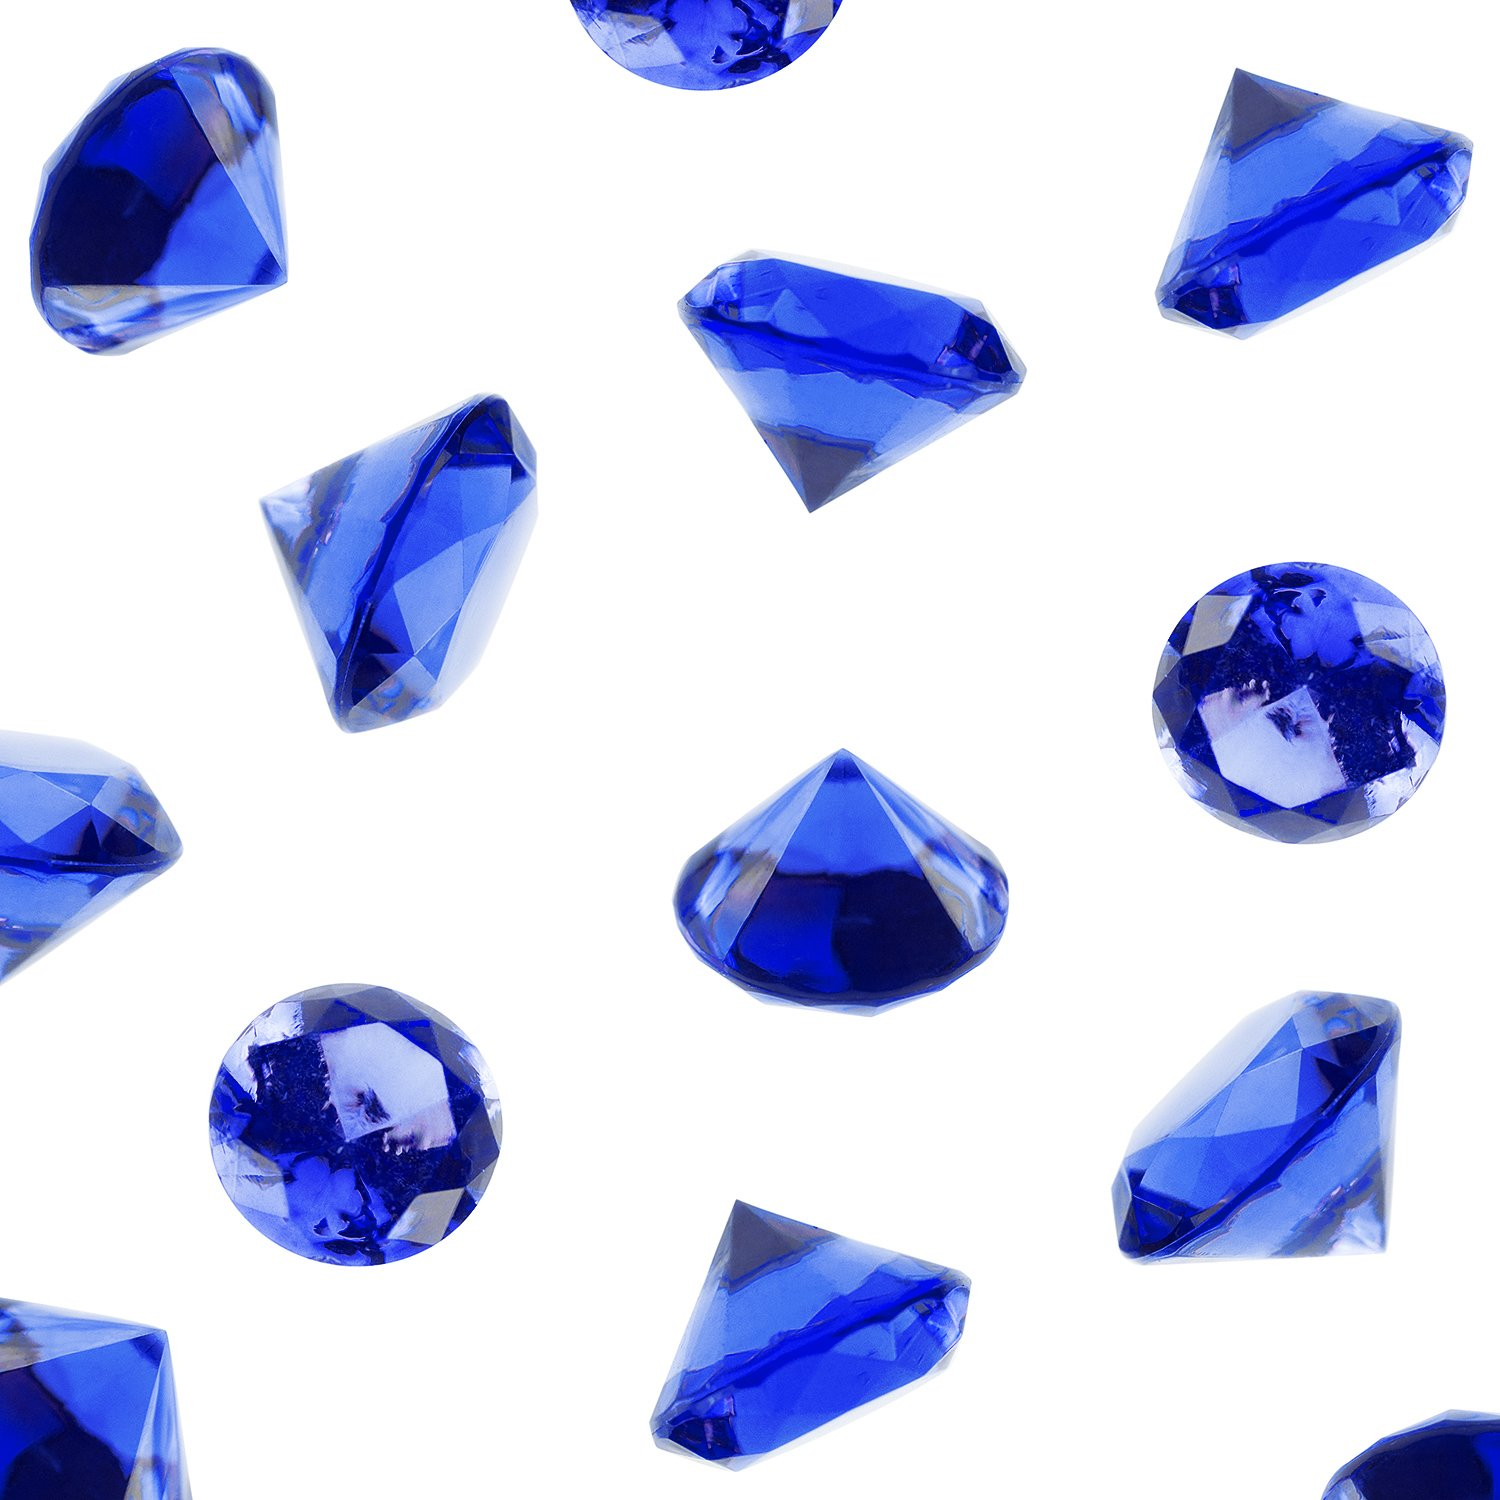 Acrylic Color Faux Round Diamond Crystals Treasure Gems for Table Scatters, Vase Fillers, Event, Wedding, Arts & Crafts (1 Pound, 240 Pieces) by Super Z Outlet (Royal Blue)